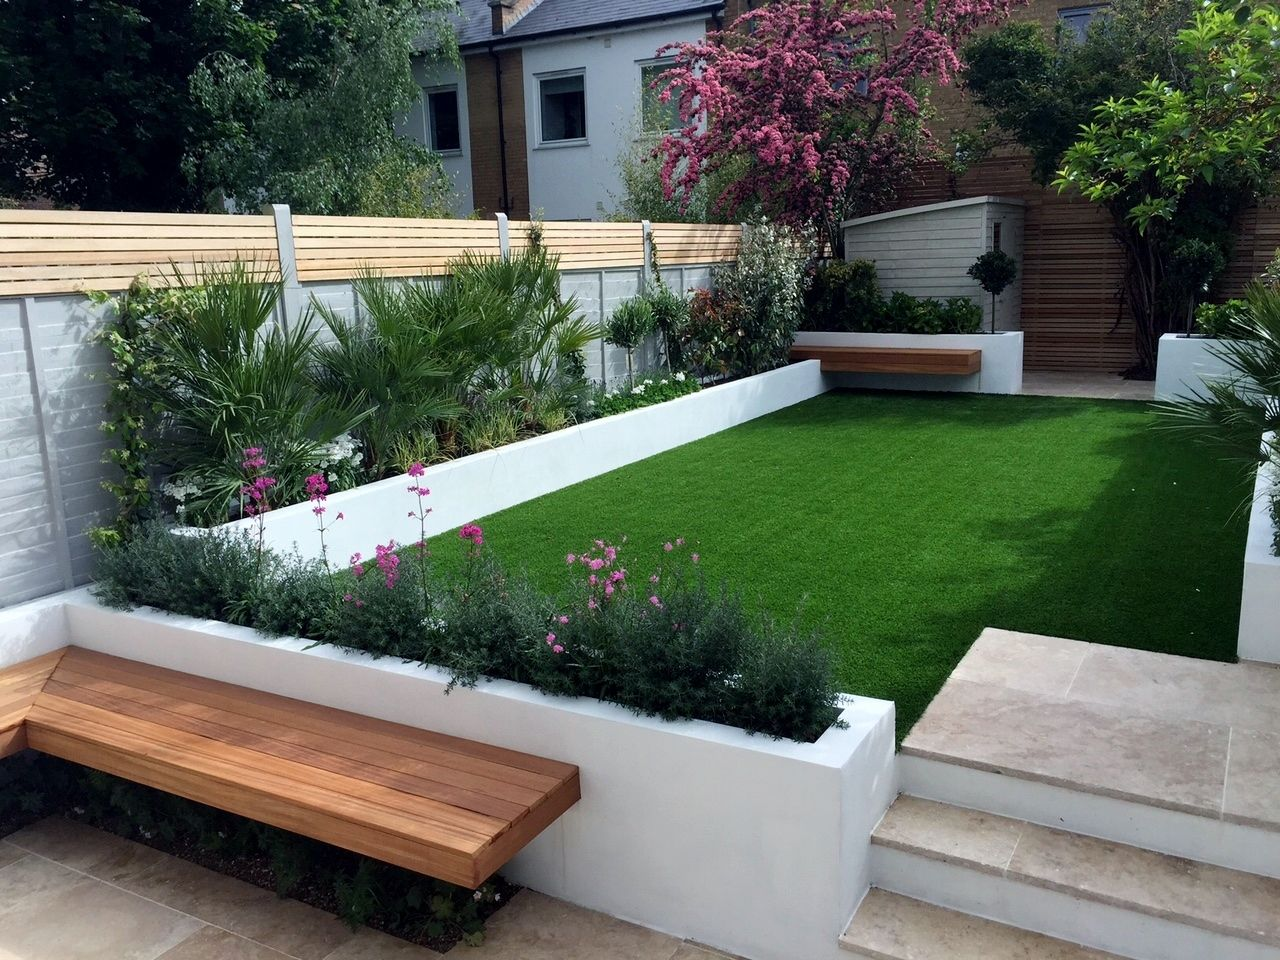 Gardening Areas We Cover in London Small Garden Designs Visit